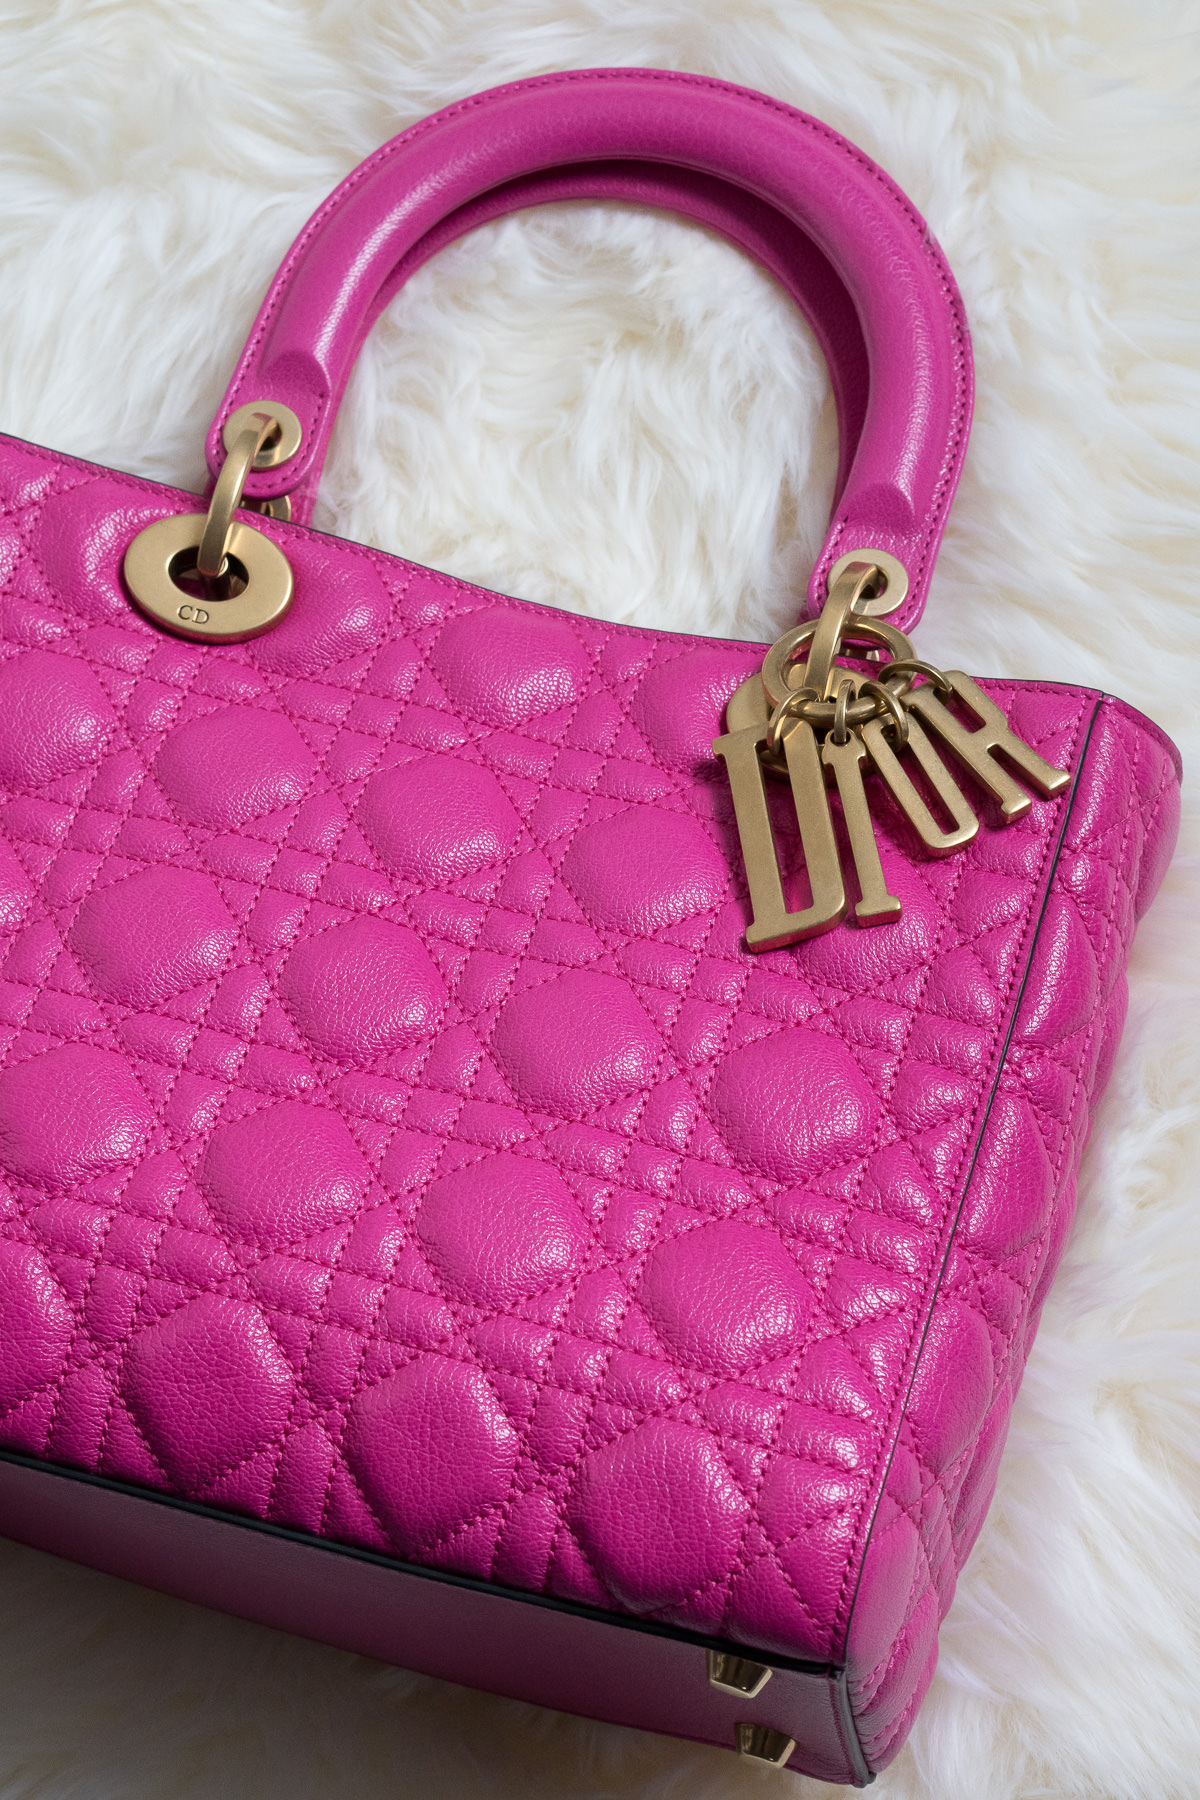 abab23c195 Color Crushing on the Lady Dior Bag in Hot Pink